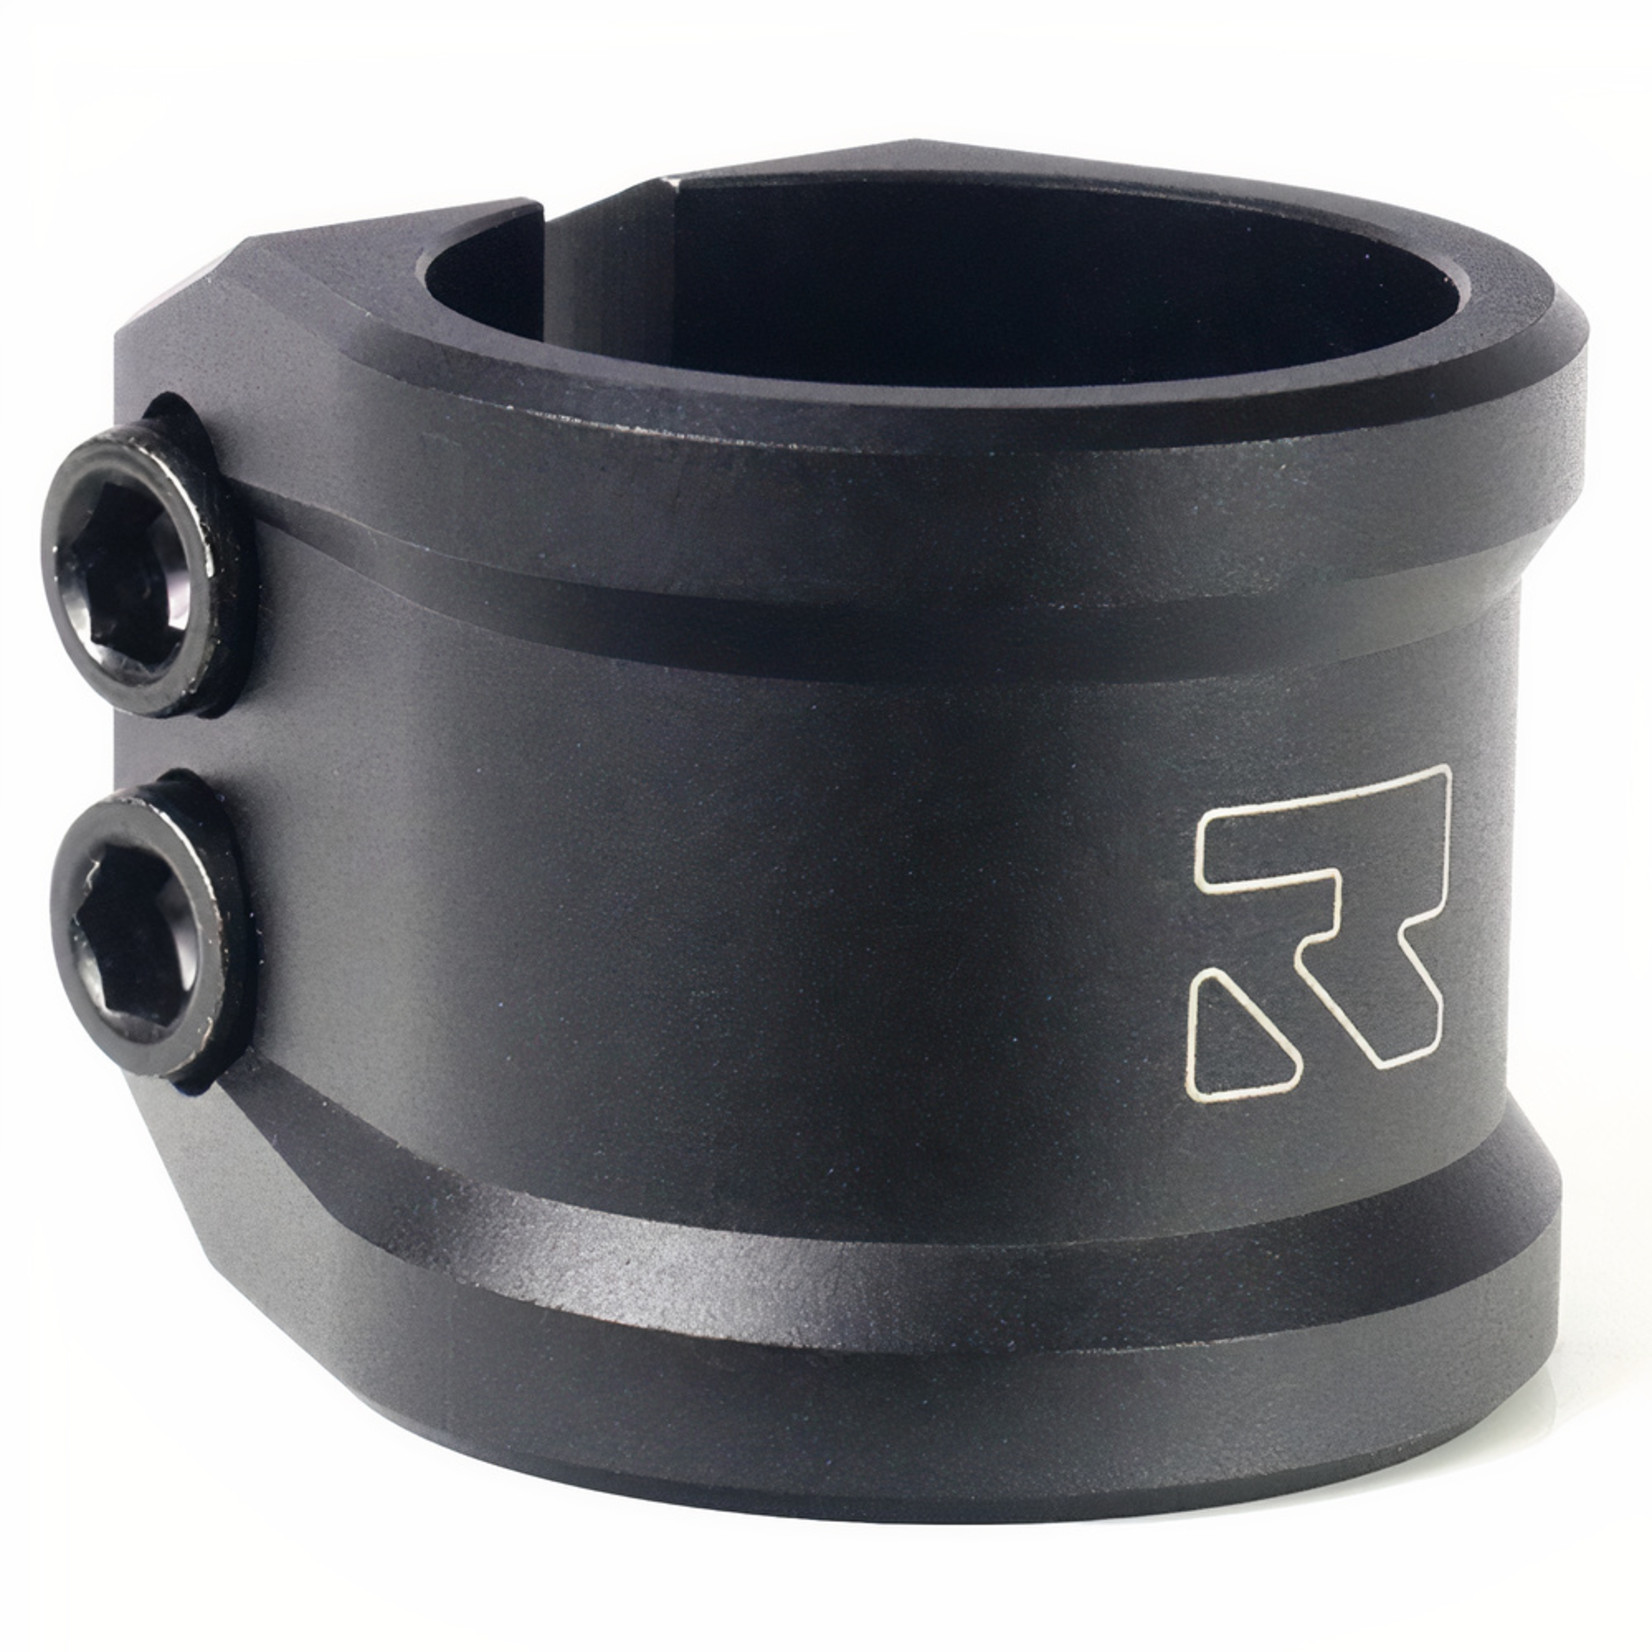 Root Industries Root Industries - Lithium Double Clamp Black